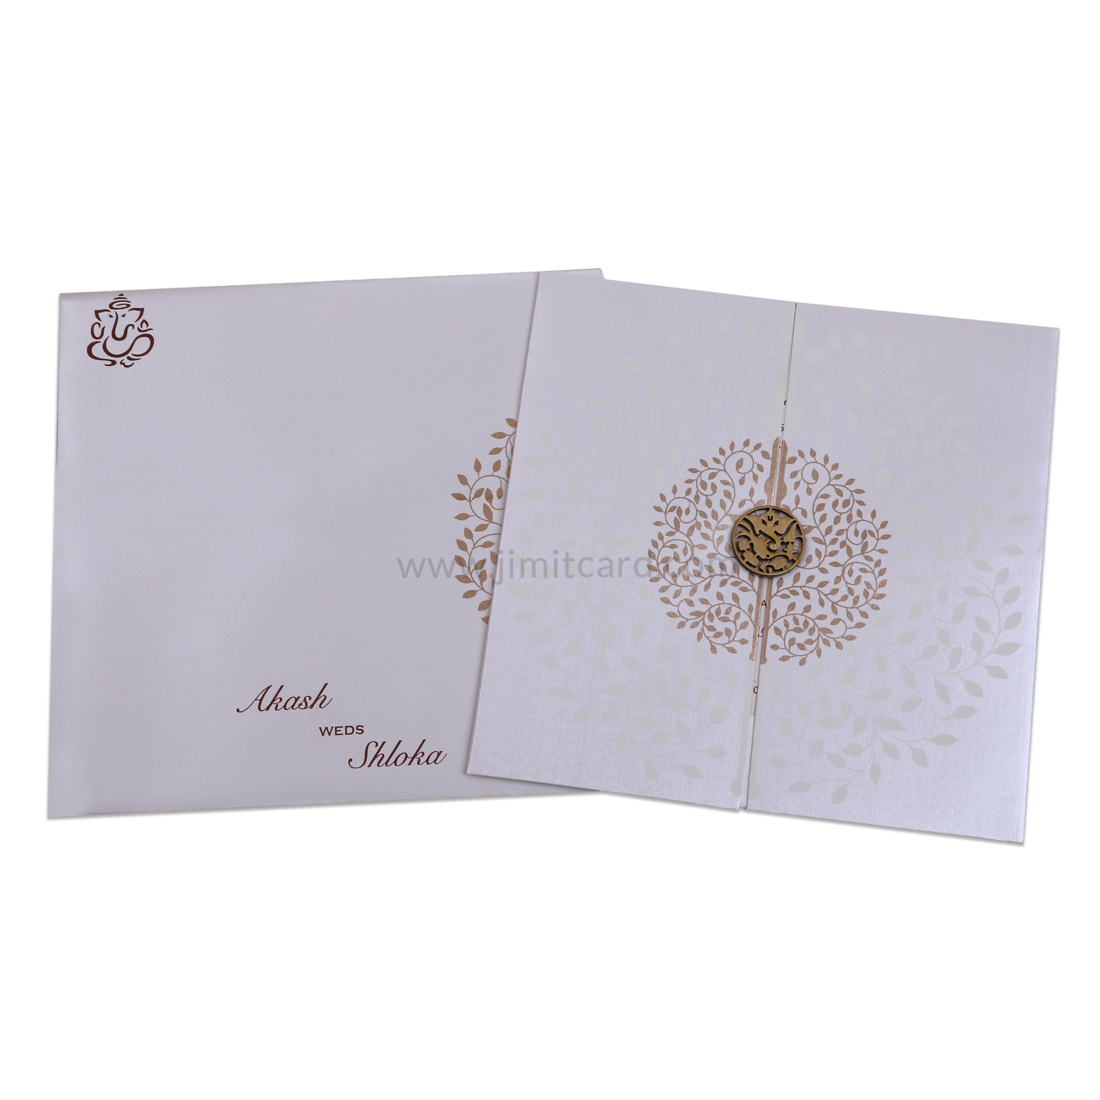 Silver Door Open Style Wedding Invitation Card With Embedded Design of Leaves in Circle-0